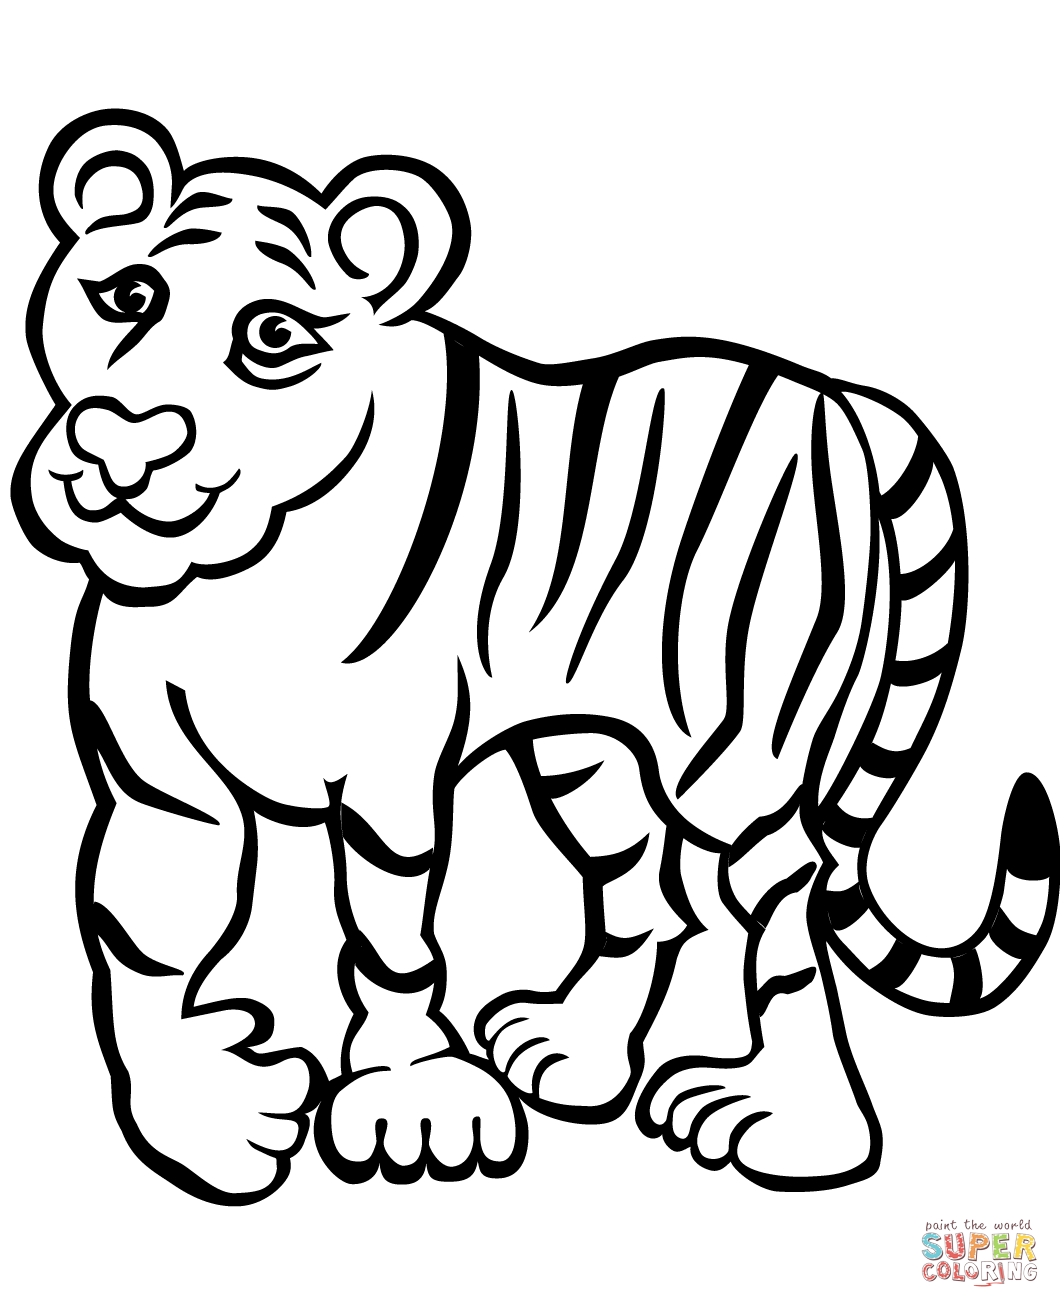 Saber Tooth Tiger Coloring Page At Getcolorings